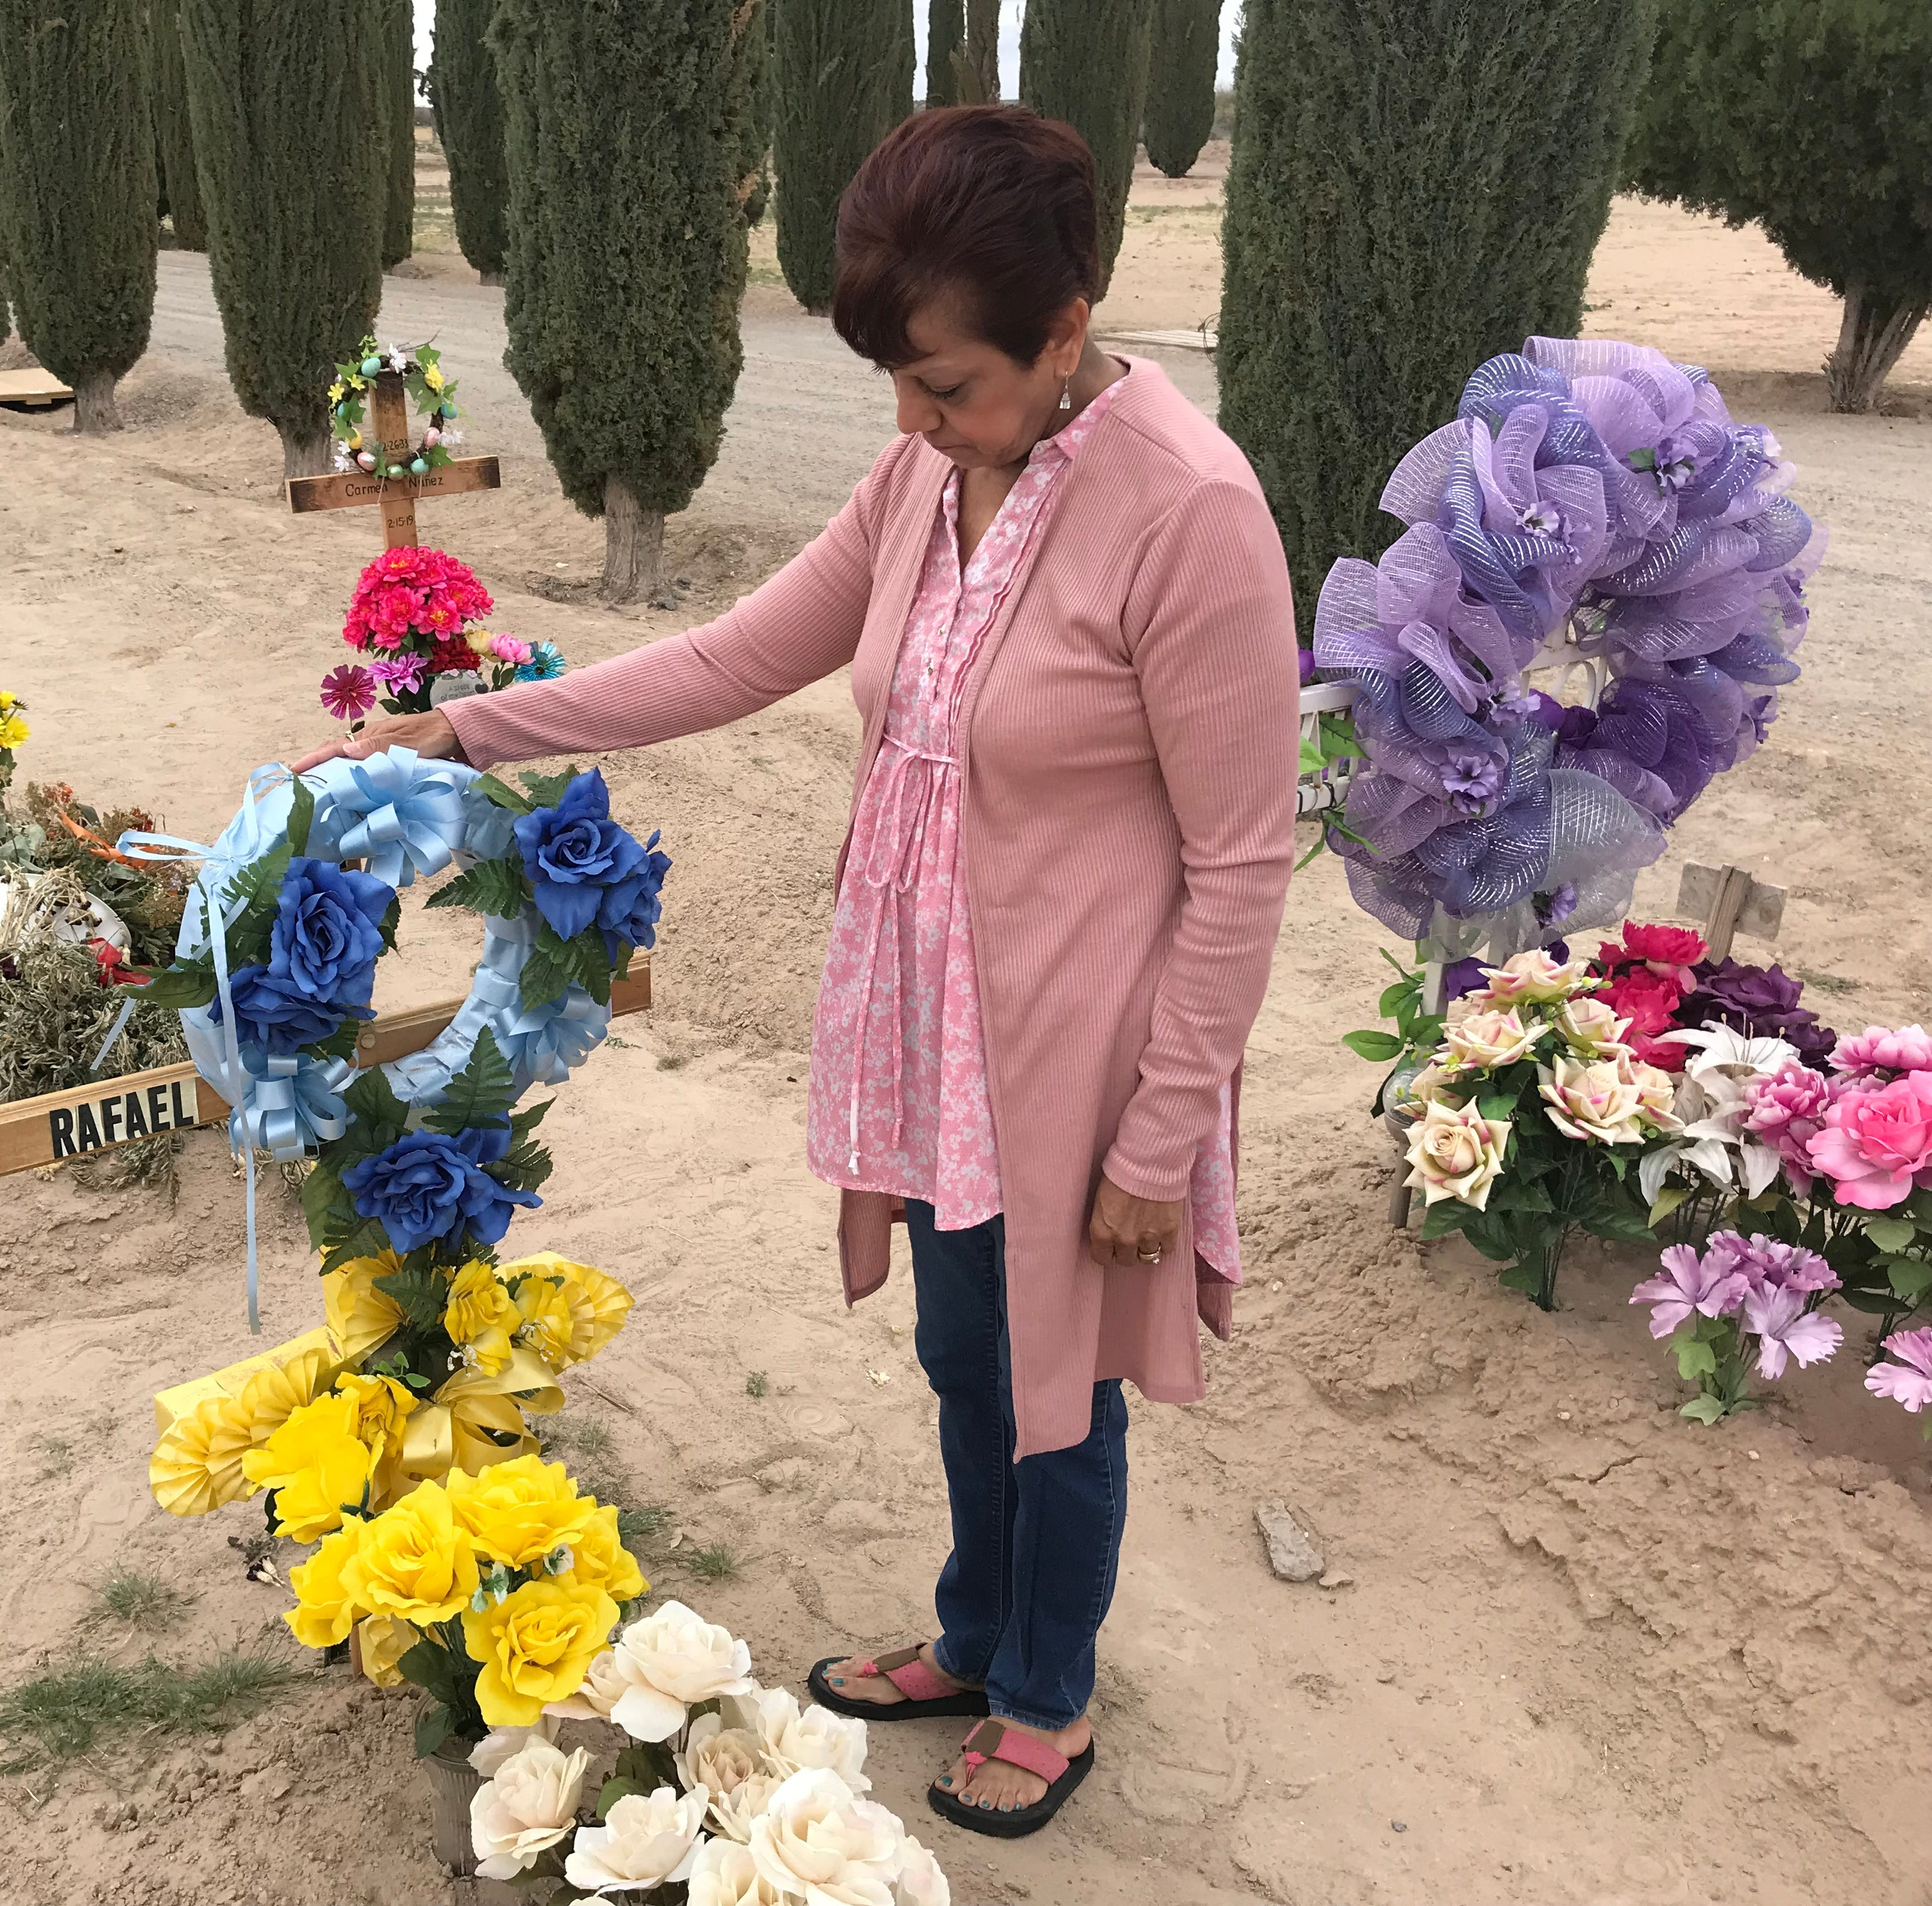 Mourning families claim El Paso company failed to deliver headstones